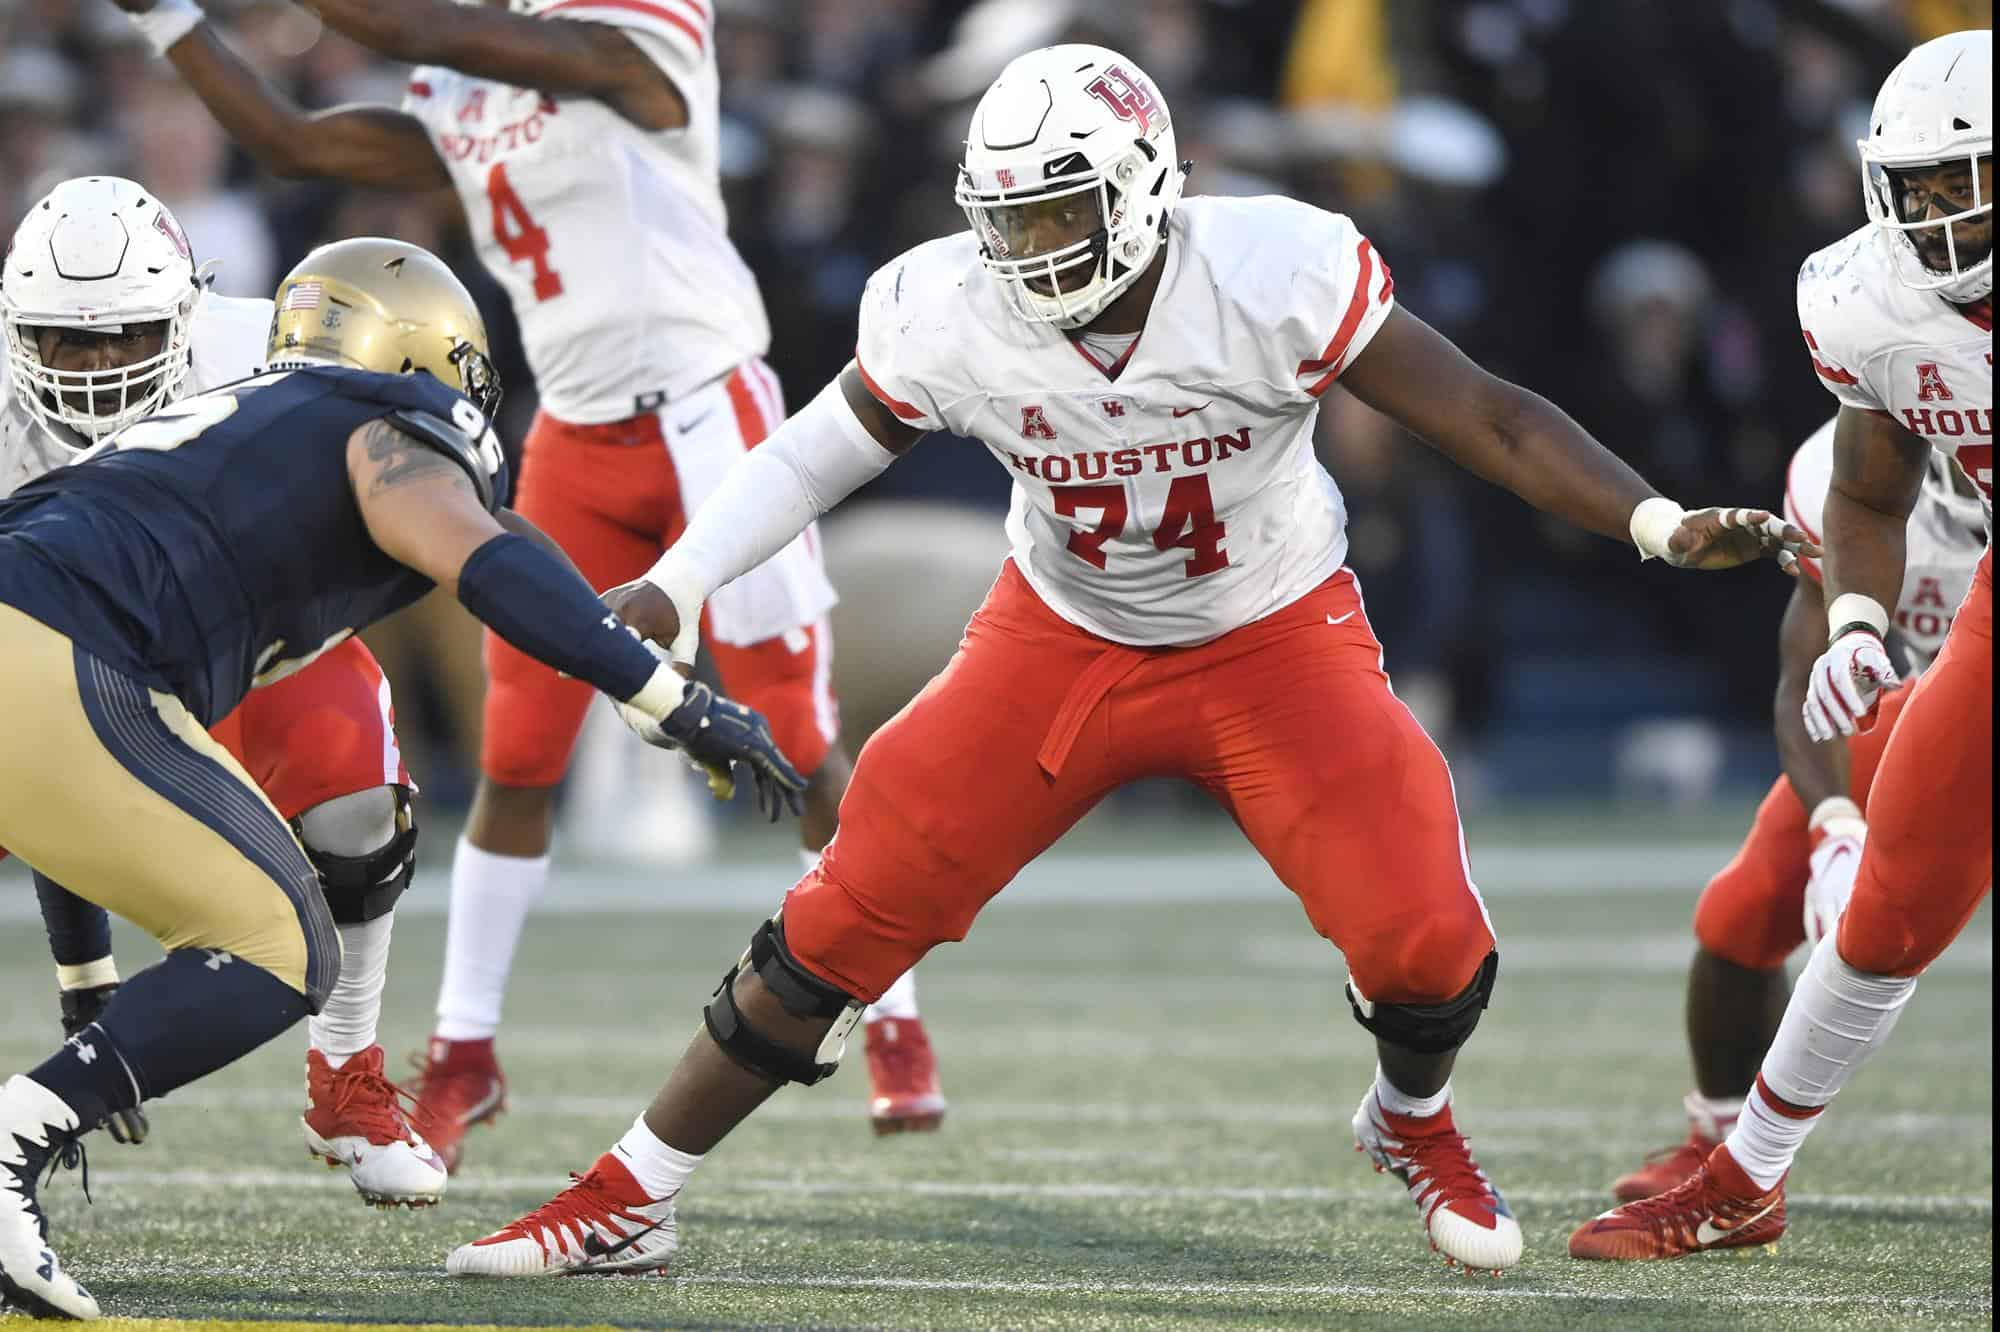 2020 NFL Draft: Houston's Josh Jones looking like a top prospect | PFN